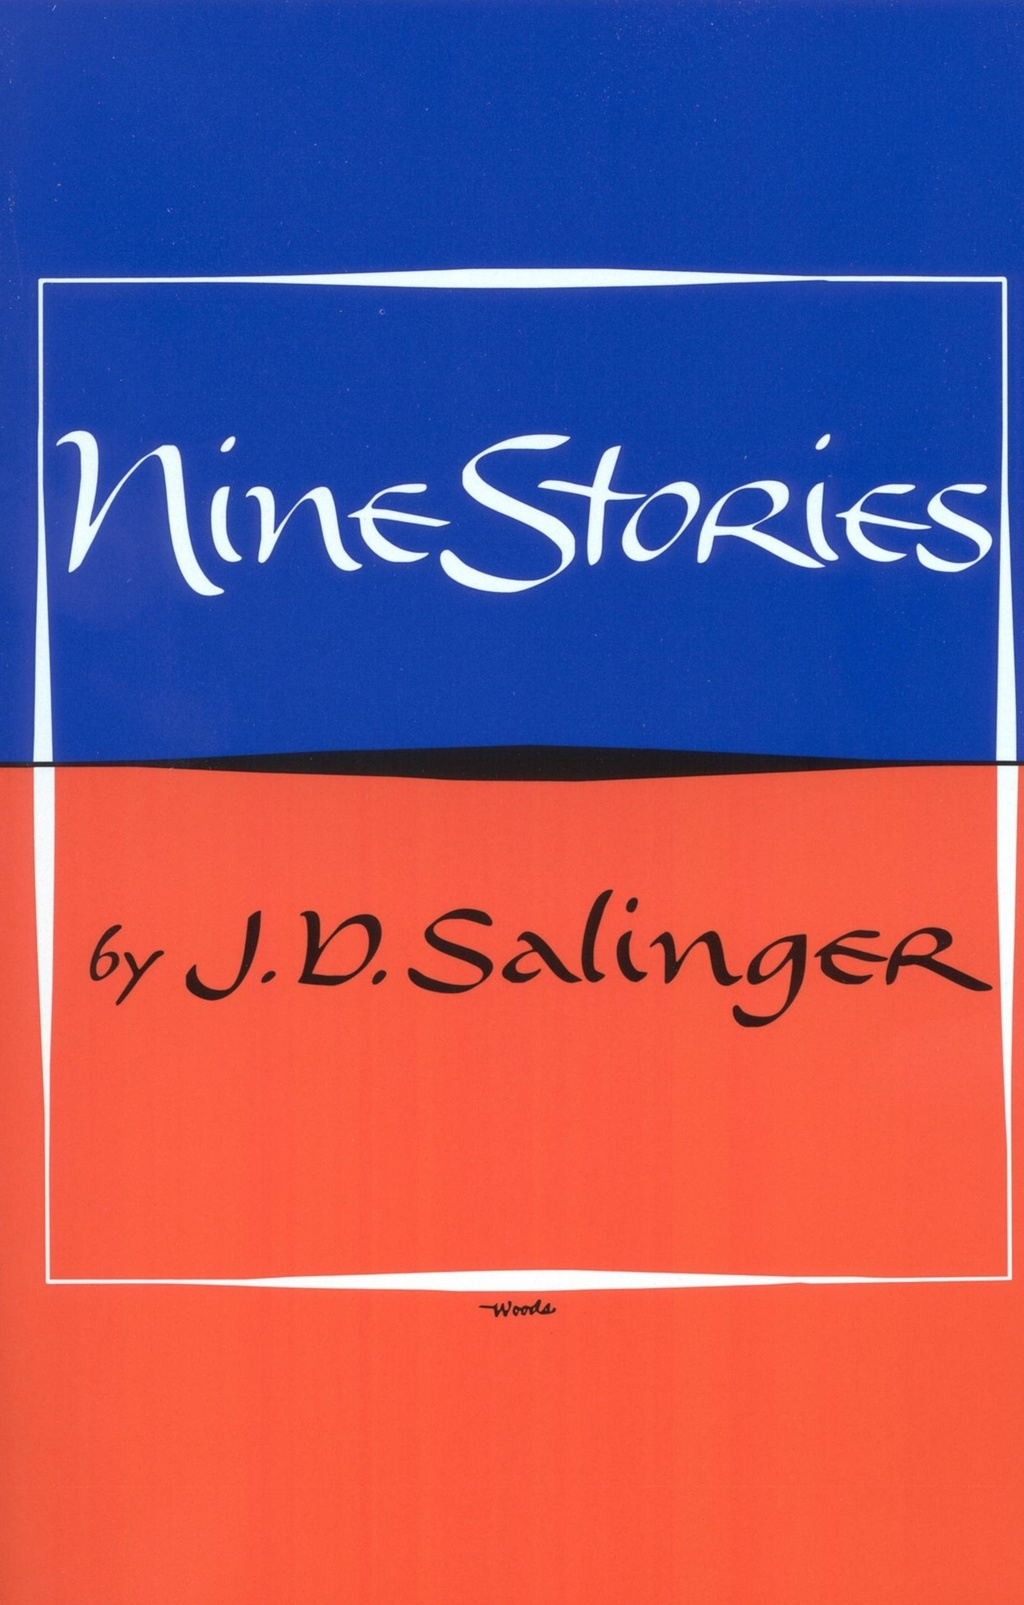 jd salinger nine stories essay In teddy by jd salinger we have the theme of dysfunction, acceptance, materialism and spirituality taken from his nine stories collection the story is narrated in the third person by an unnamed narrator and after reading the story the reader suspects that salinger may be exploring the theme of dysfunction.